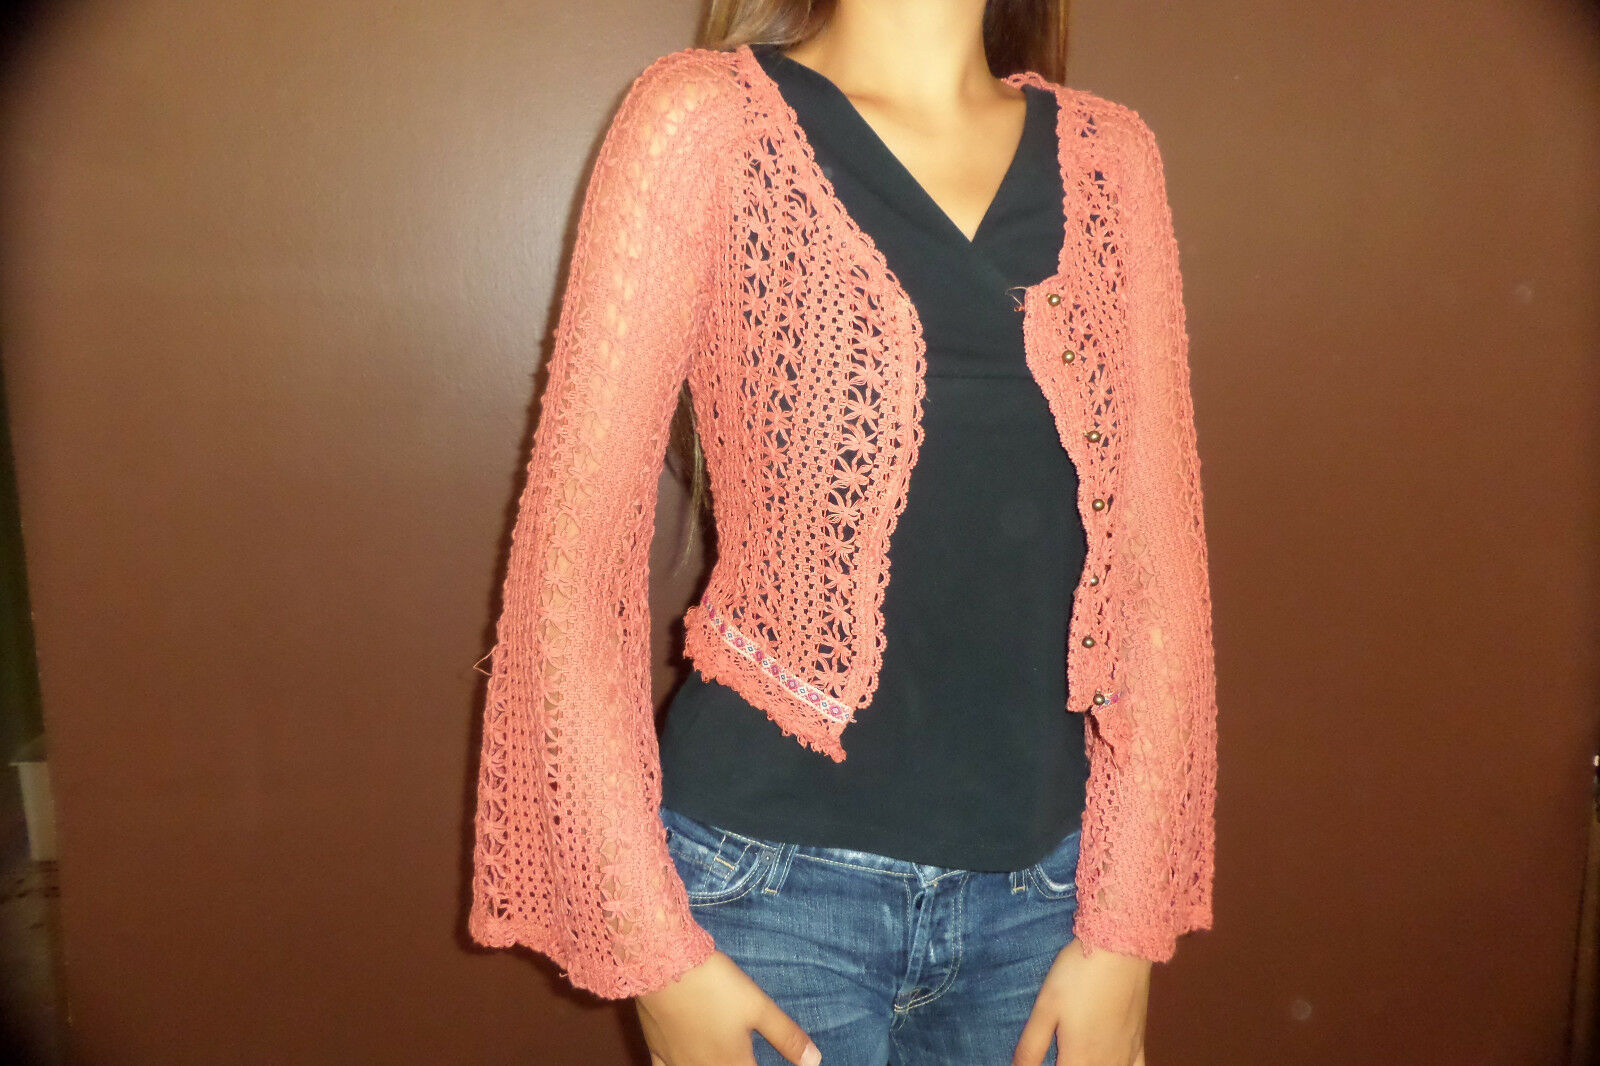 Daytrip The Buckle Cropped Cardigan Sweater sz XS NWT image 2